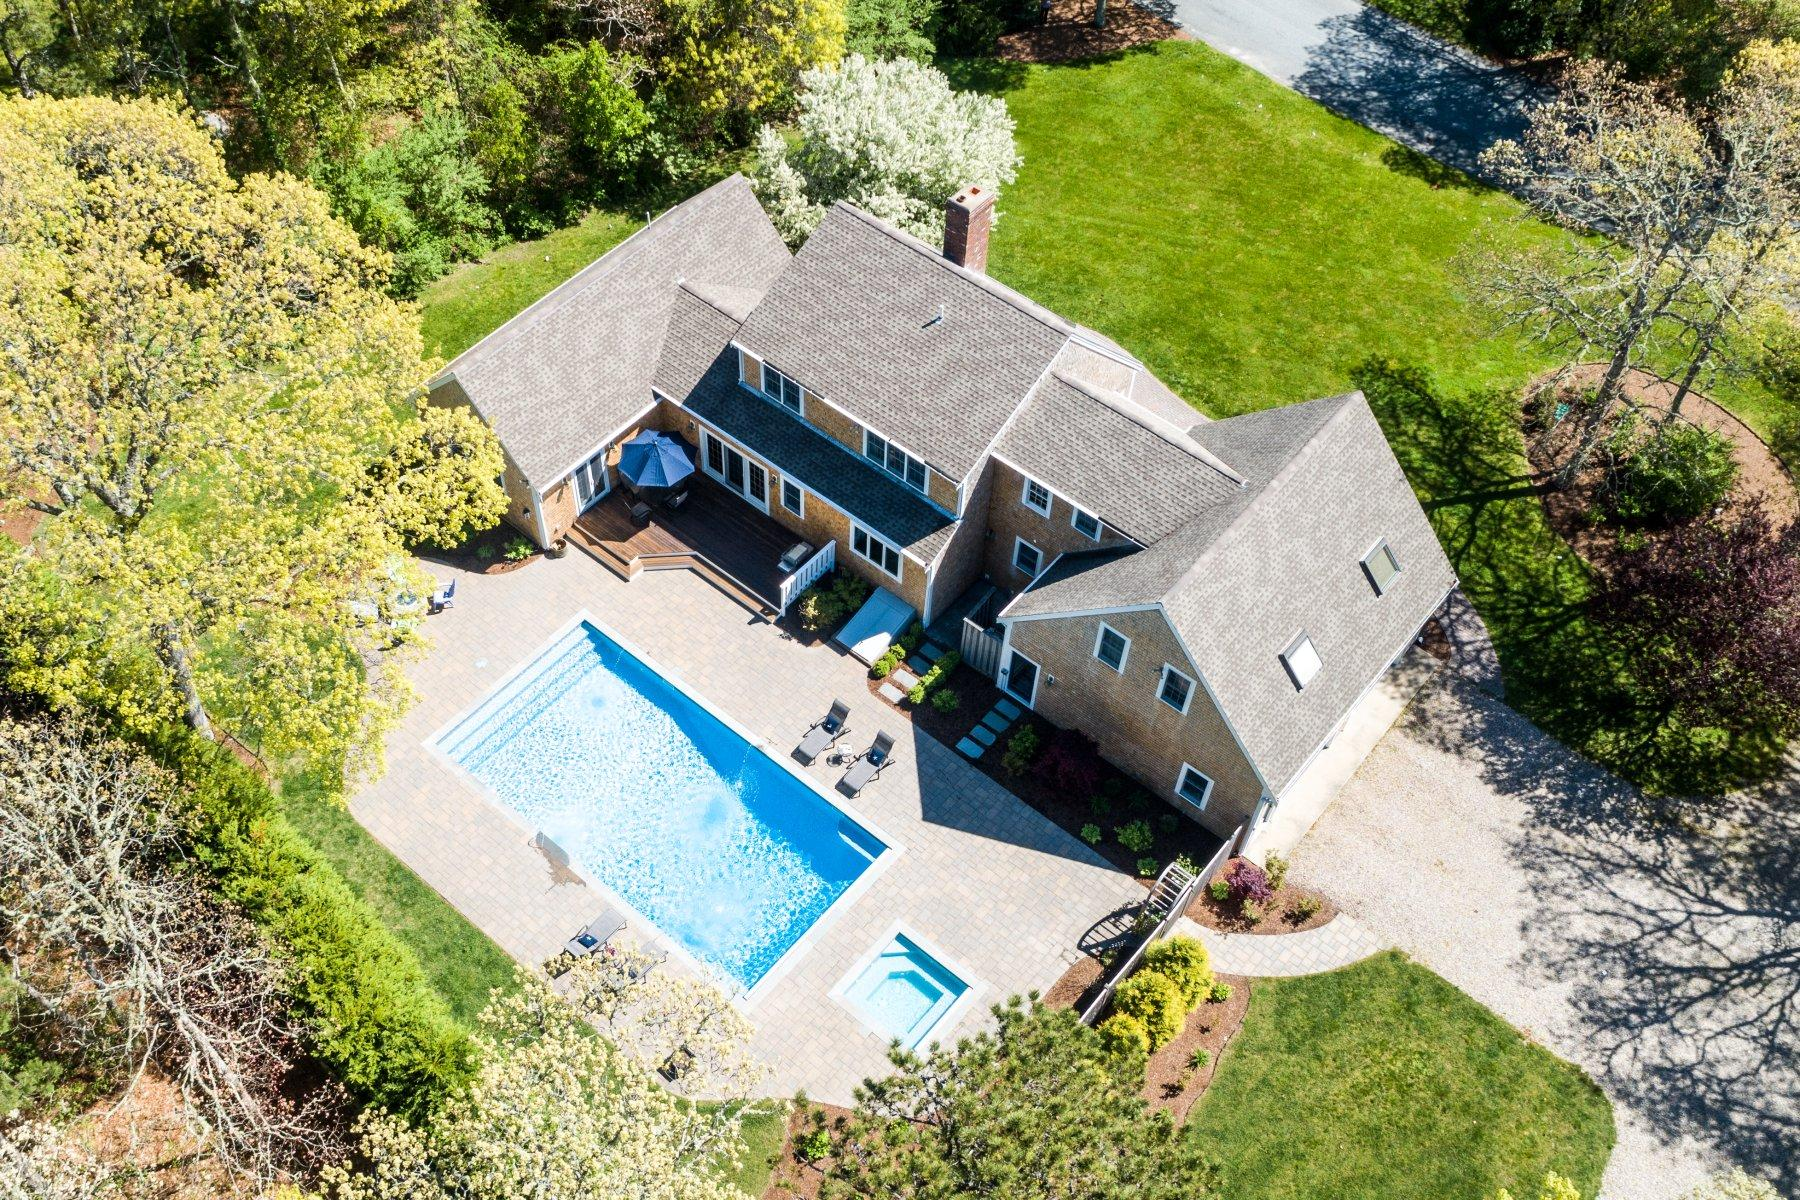 Single Family Homes for Active at 11 Keith Lane, Brewster, MA 11 Keith Lane Brewster, Massachusetts 02631 United States